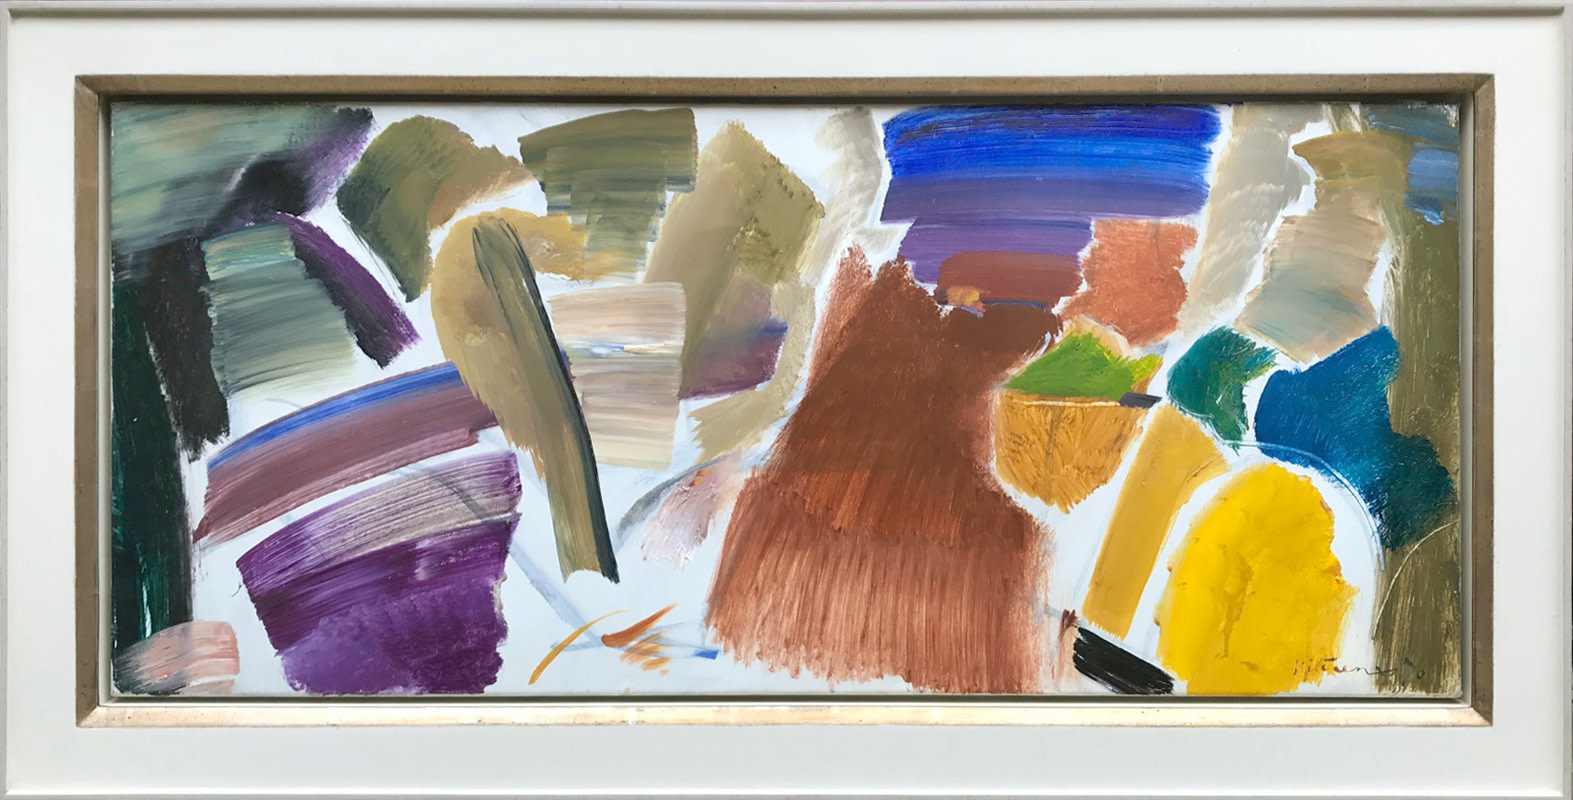 <span class=&#34;link fancybox-details-link&#34;><a href=&#34;/artists/52-ivon-hitchens/works/460/&#34;>View Detail Page</a></span><div class=&#34;artist&#34;><strong>Ivon Hitchens</strong></div> 1893-1979 <div class=&#34;title&#34;><em>Foliage Blue & Yellow</em></div> <div class=&#34;signed_and_dated&#34;>signed and dated 1970<br /> titled verso</div> <div class=&#34;medium&#34;>oil on canvas</div> <div class=&#34;dimensions&#34;>51 x 115.5 cms<br /> framed: 68.5 x 133.5 cms (27 x 52.5 ins)</div>